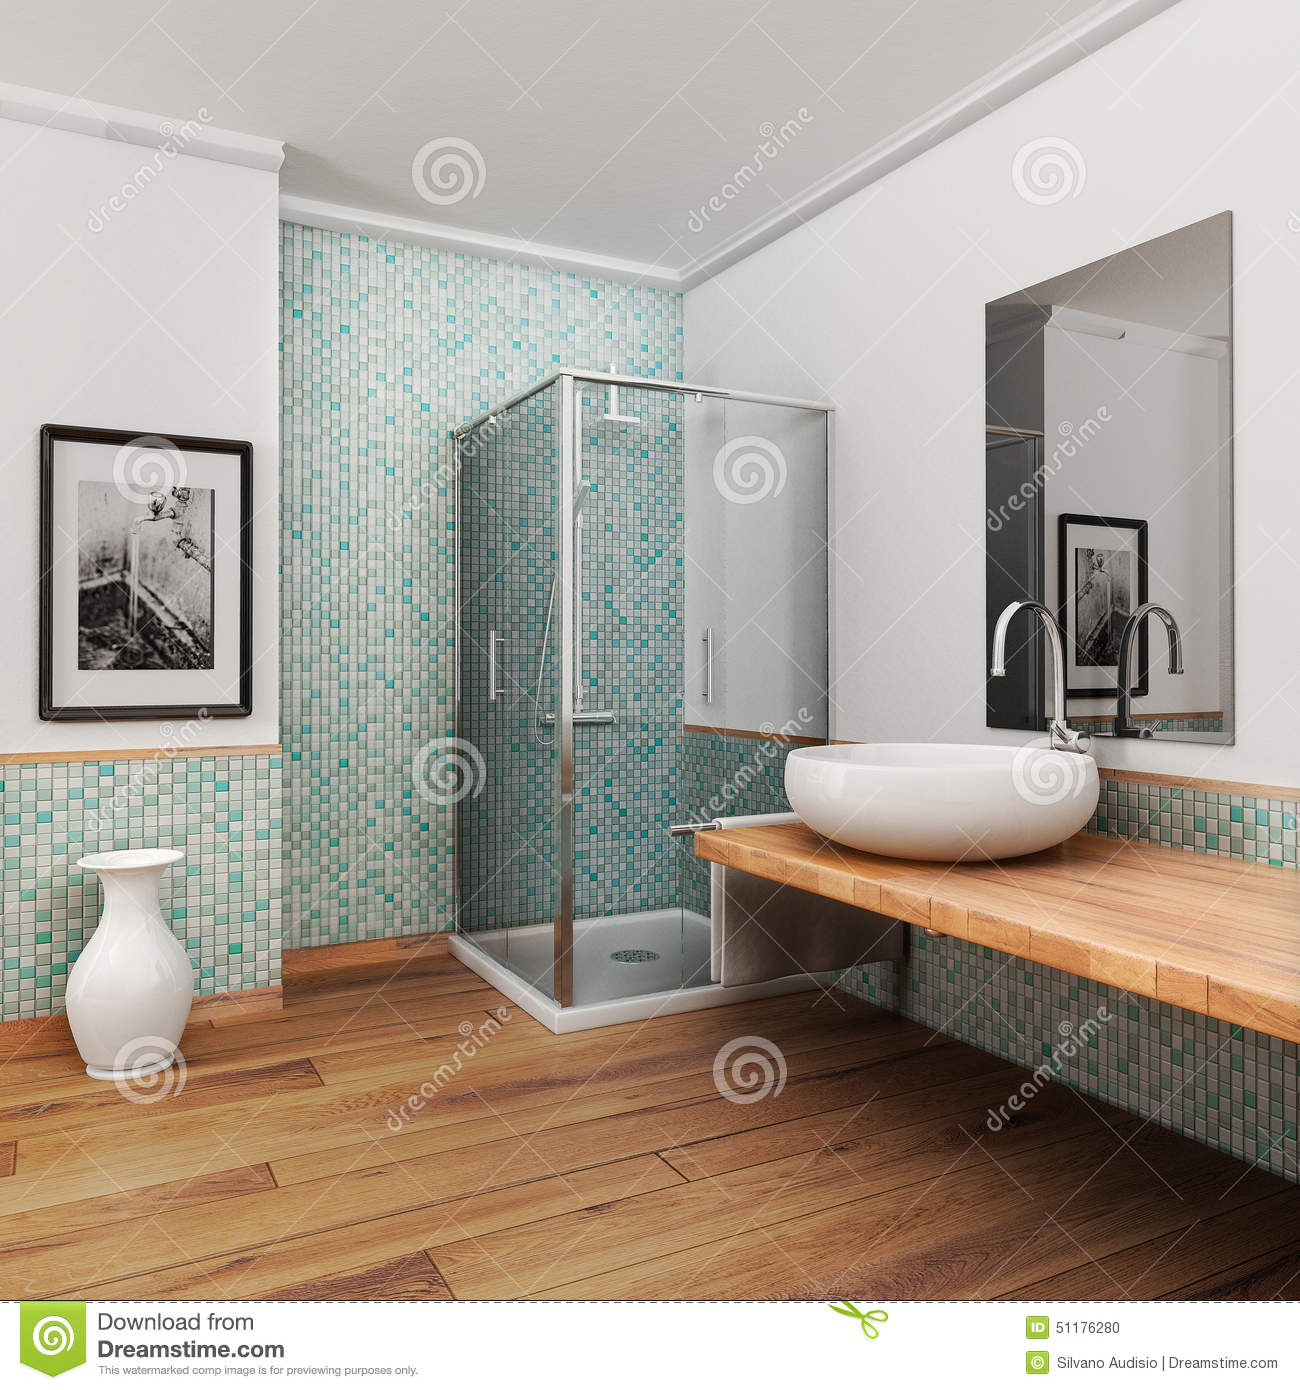 large-bathroom-wood-floor-vintage-mosaic-light-blue-green-51176280